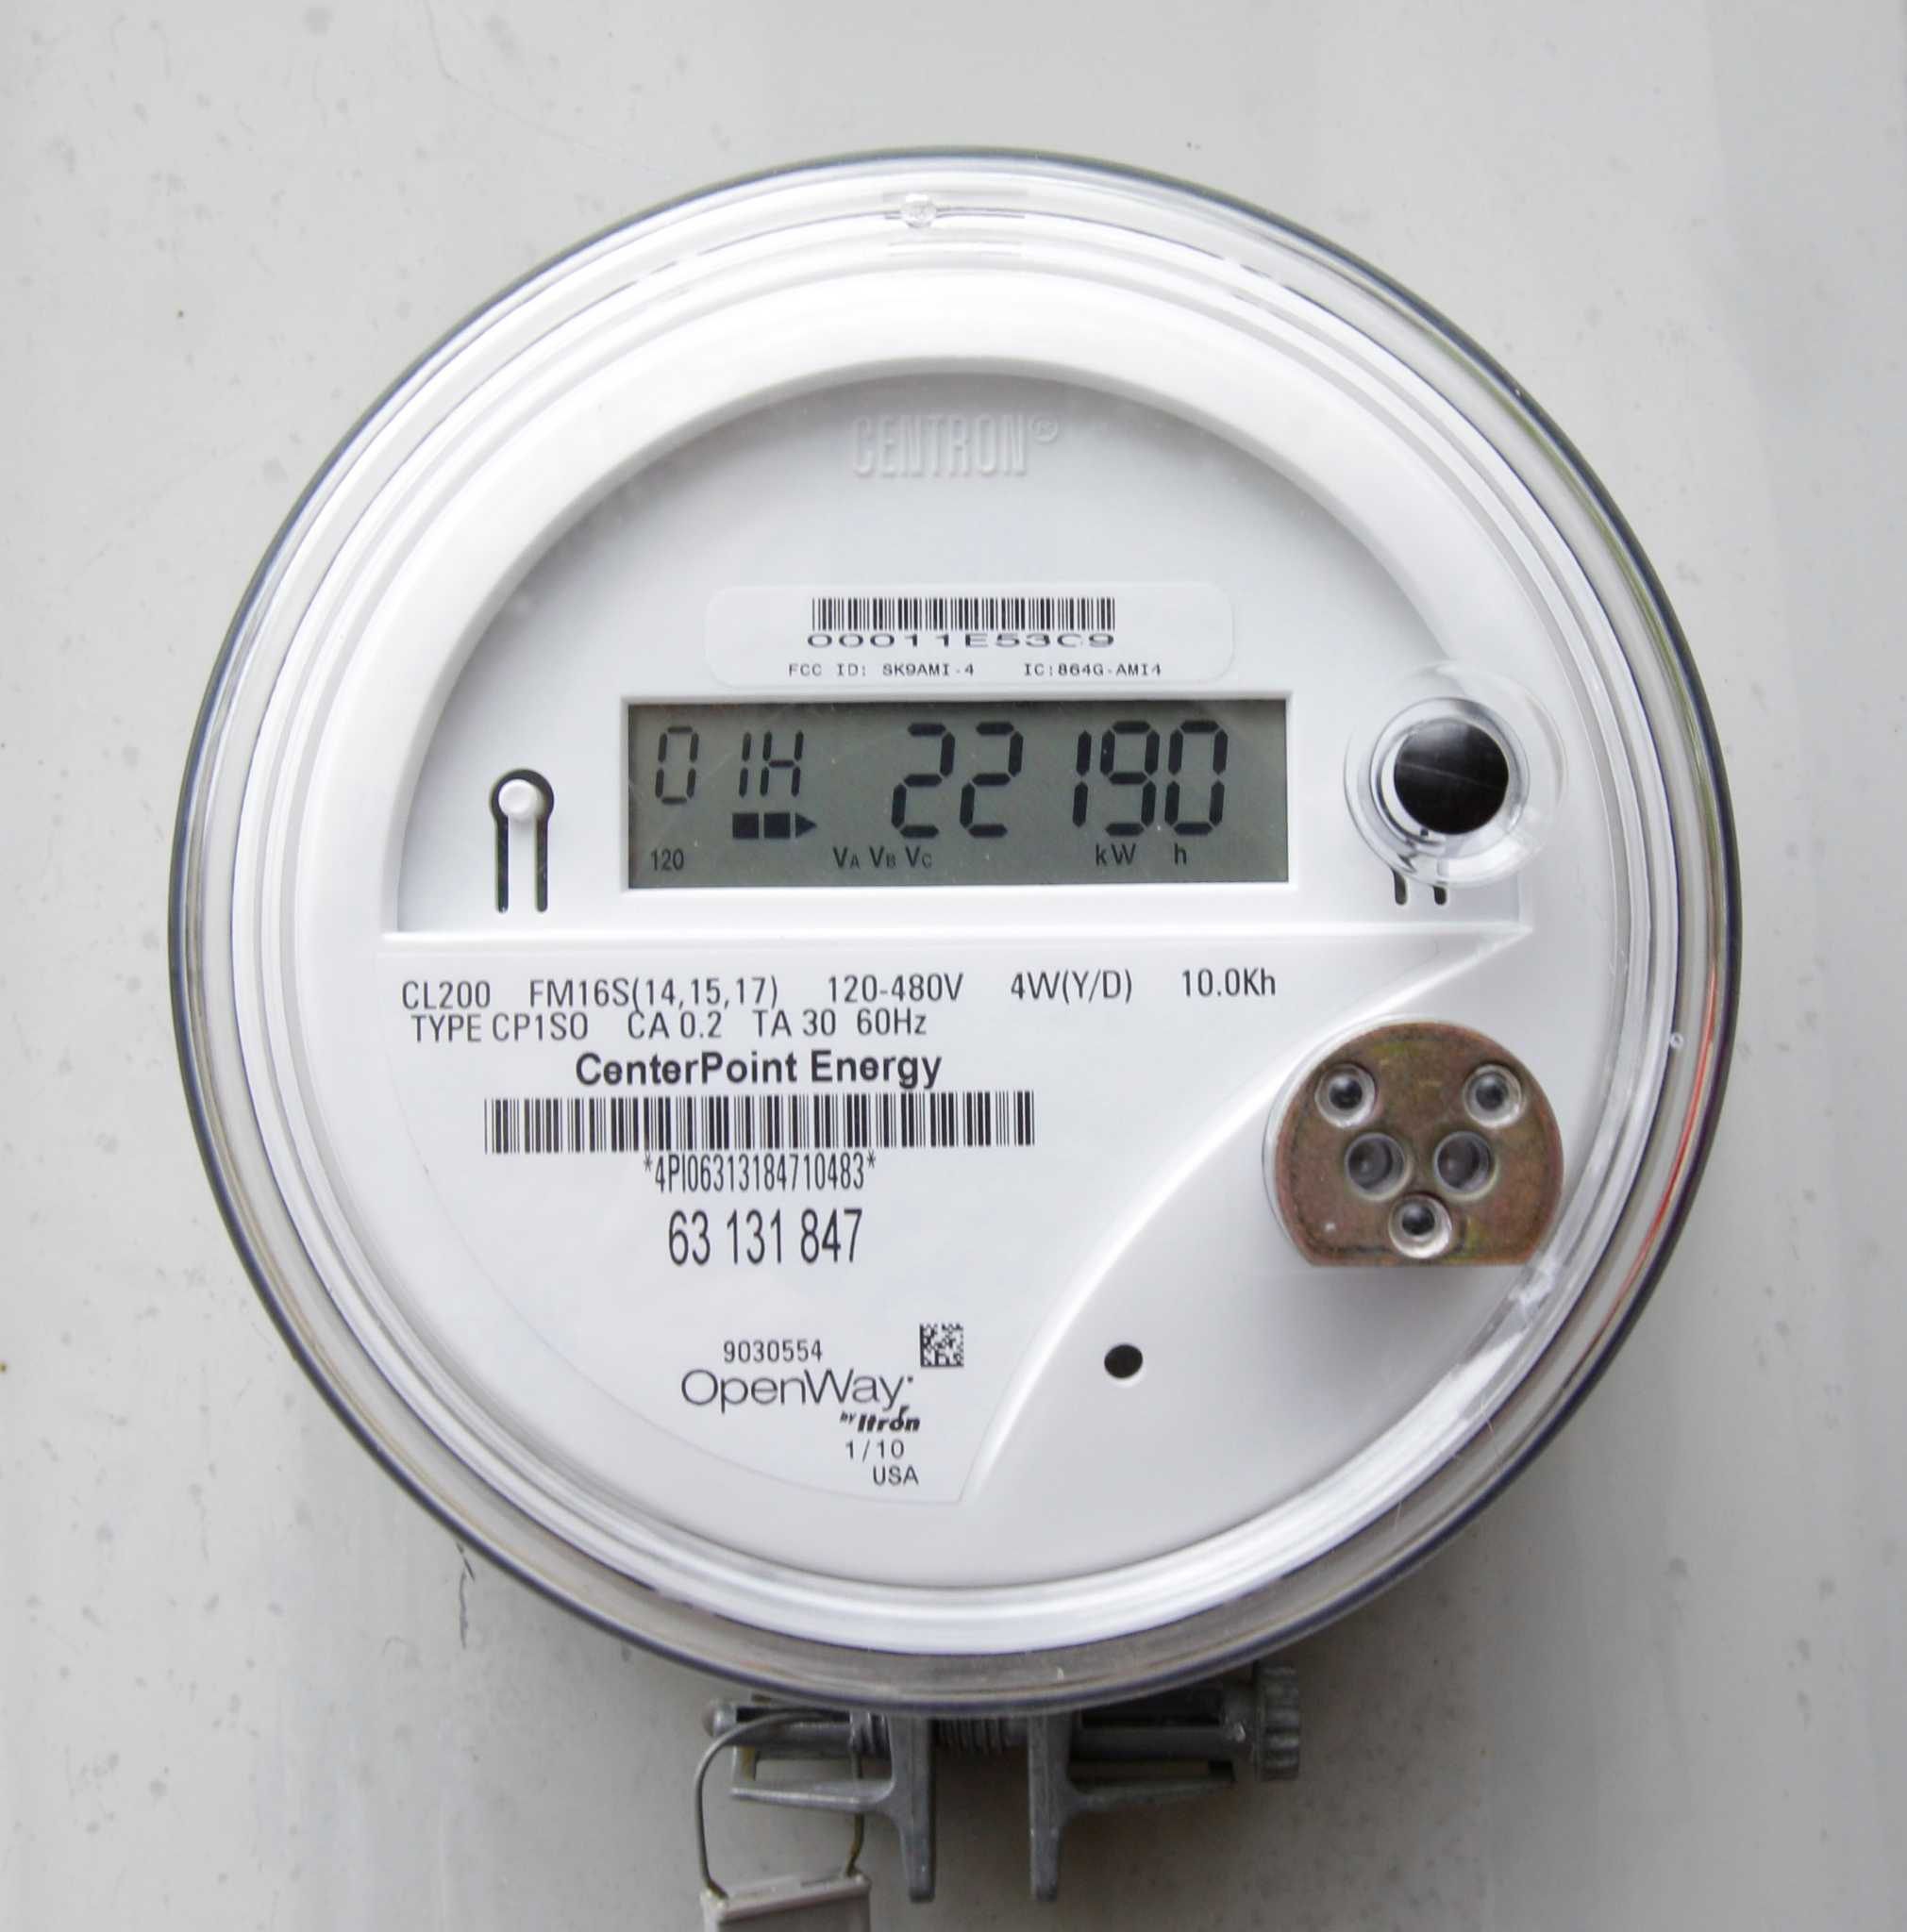 Smart Electric Meter Reading : Panelists say it s smart to use new electric meters